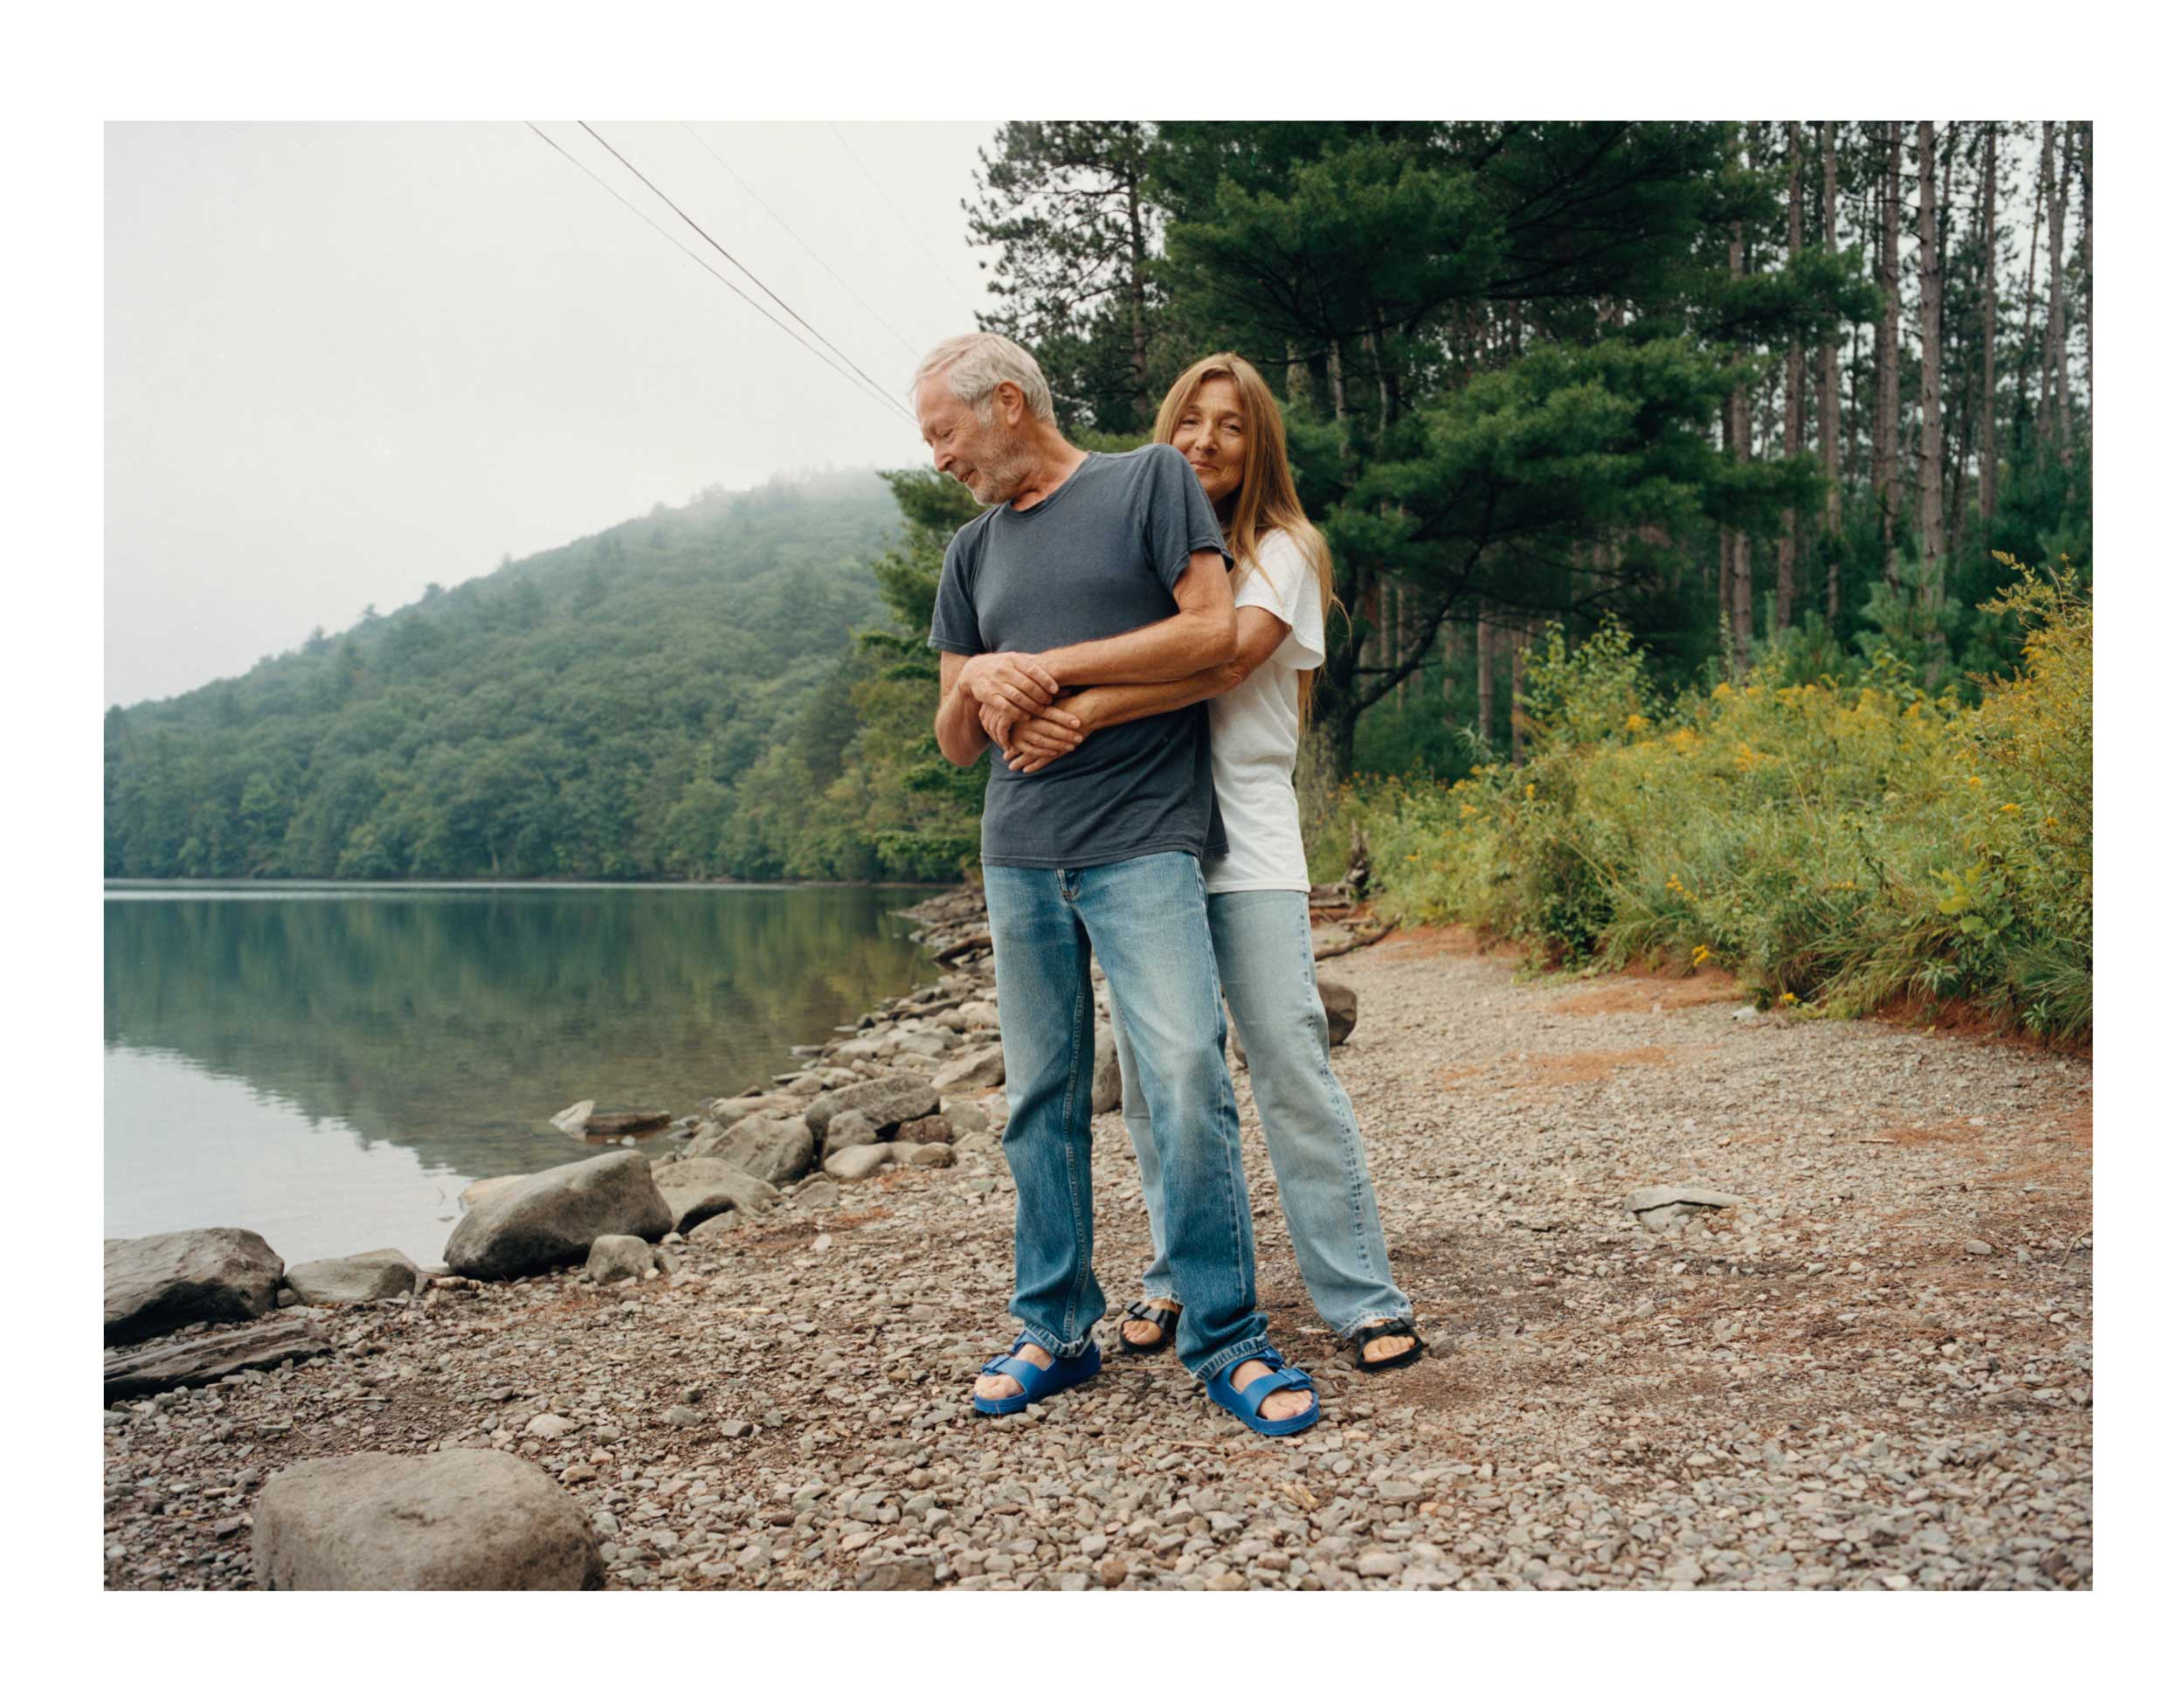 Terry and Tricia Jones, the iconoclastic duo behind 'i-D' magazine, find salvation in Upstate New York